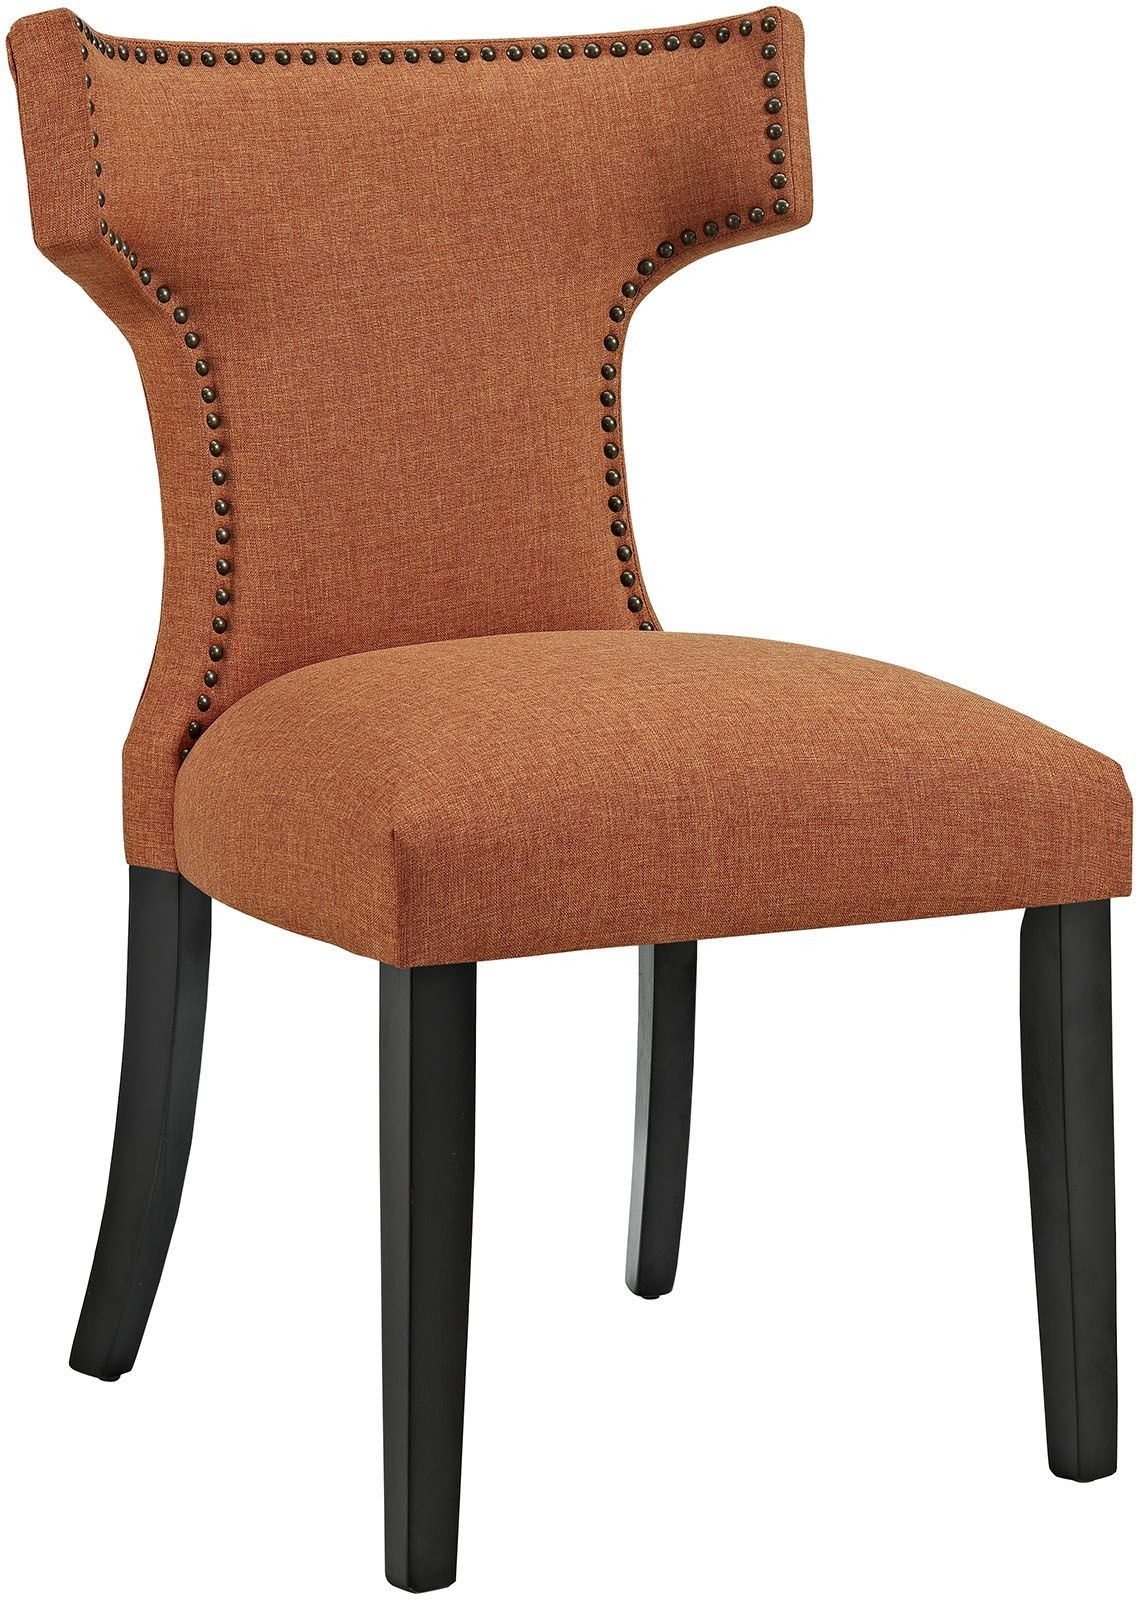 orange upholstered chair stool for standing desk curve dining from renegade